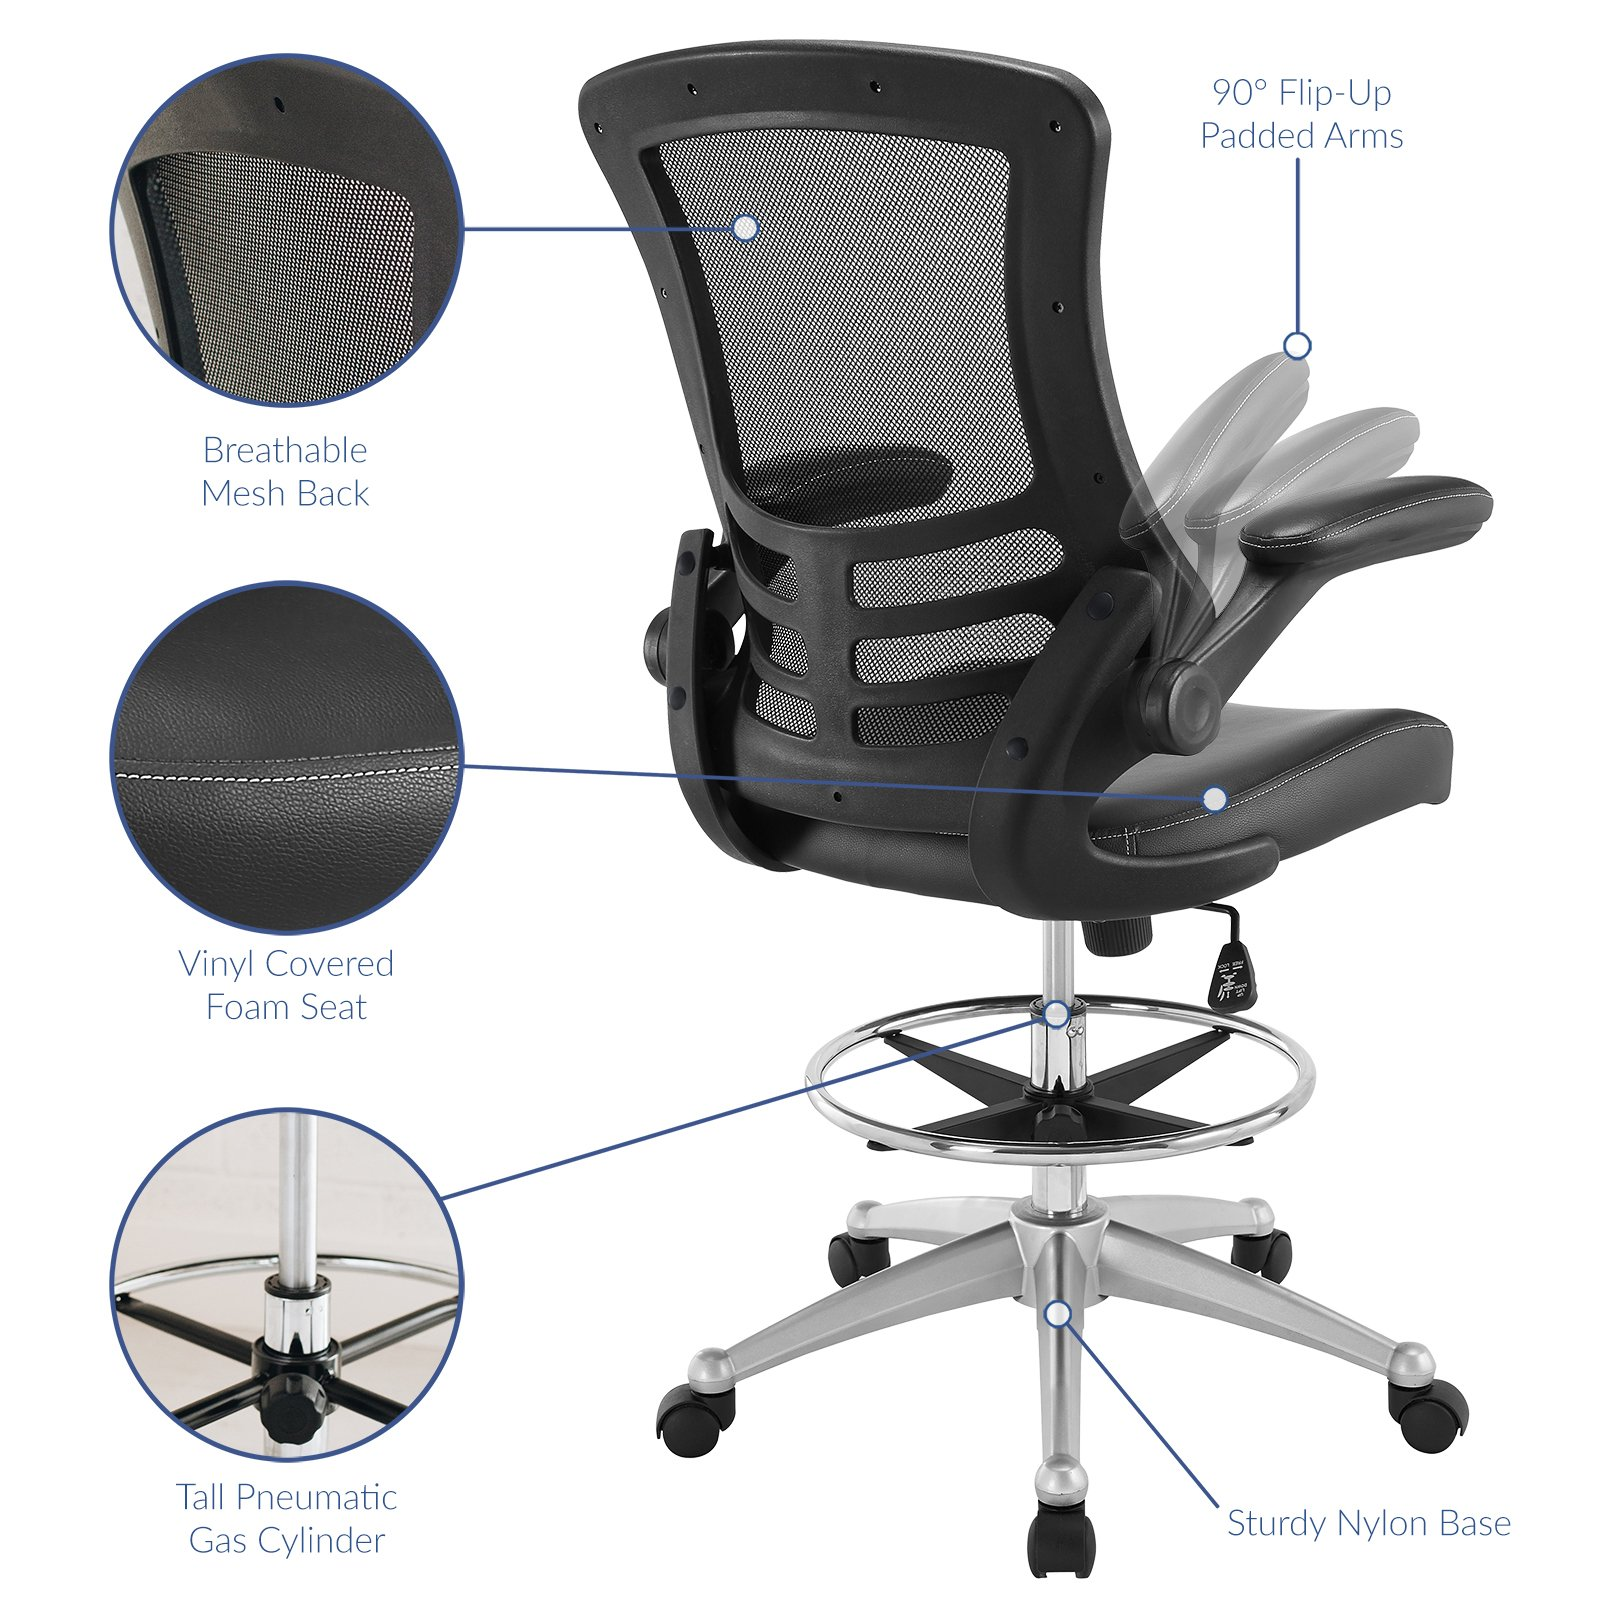 Modway Attainment Drafting Chair In Black   Reception Desk Chair   Tall  Office Chair For Adjustable Standing Desks   Flip Up Arm Drafting Table  Chair